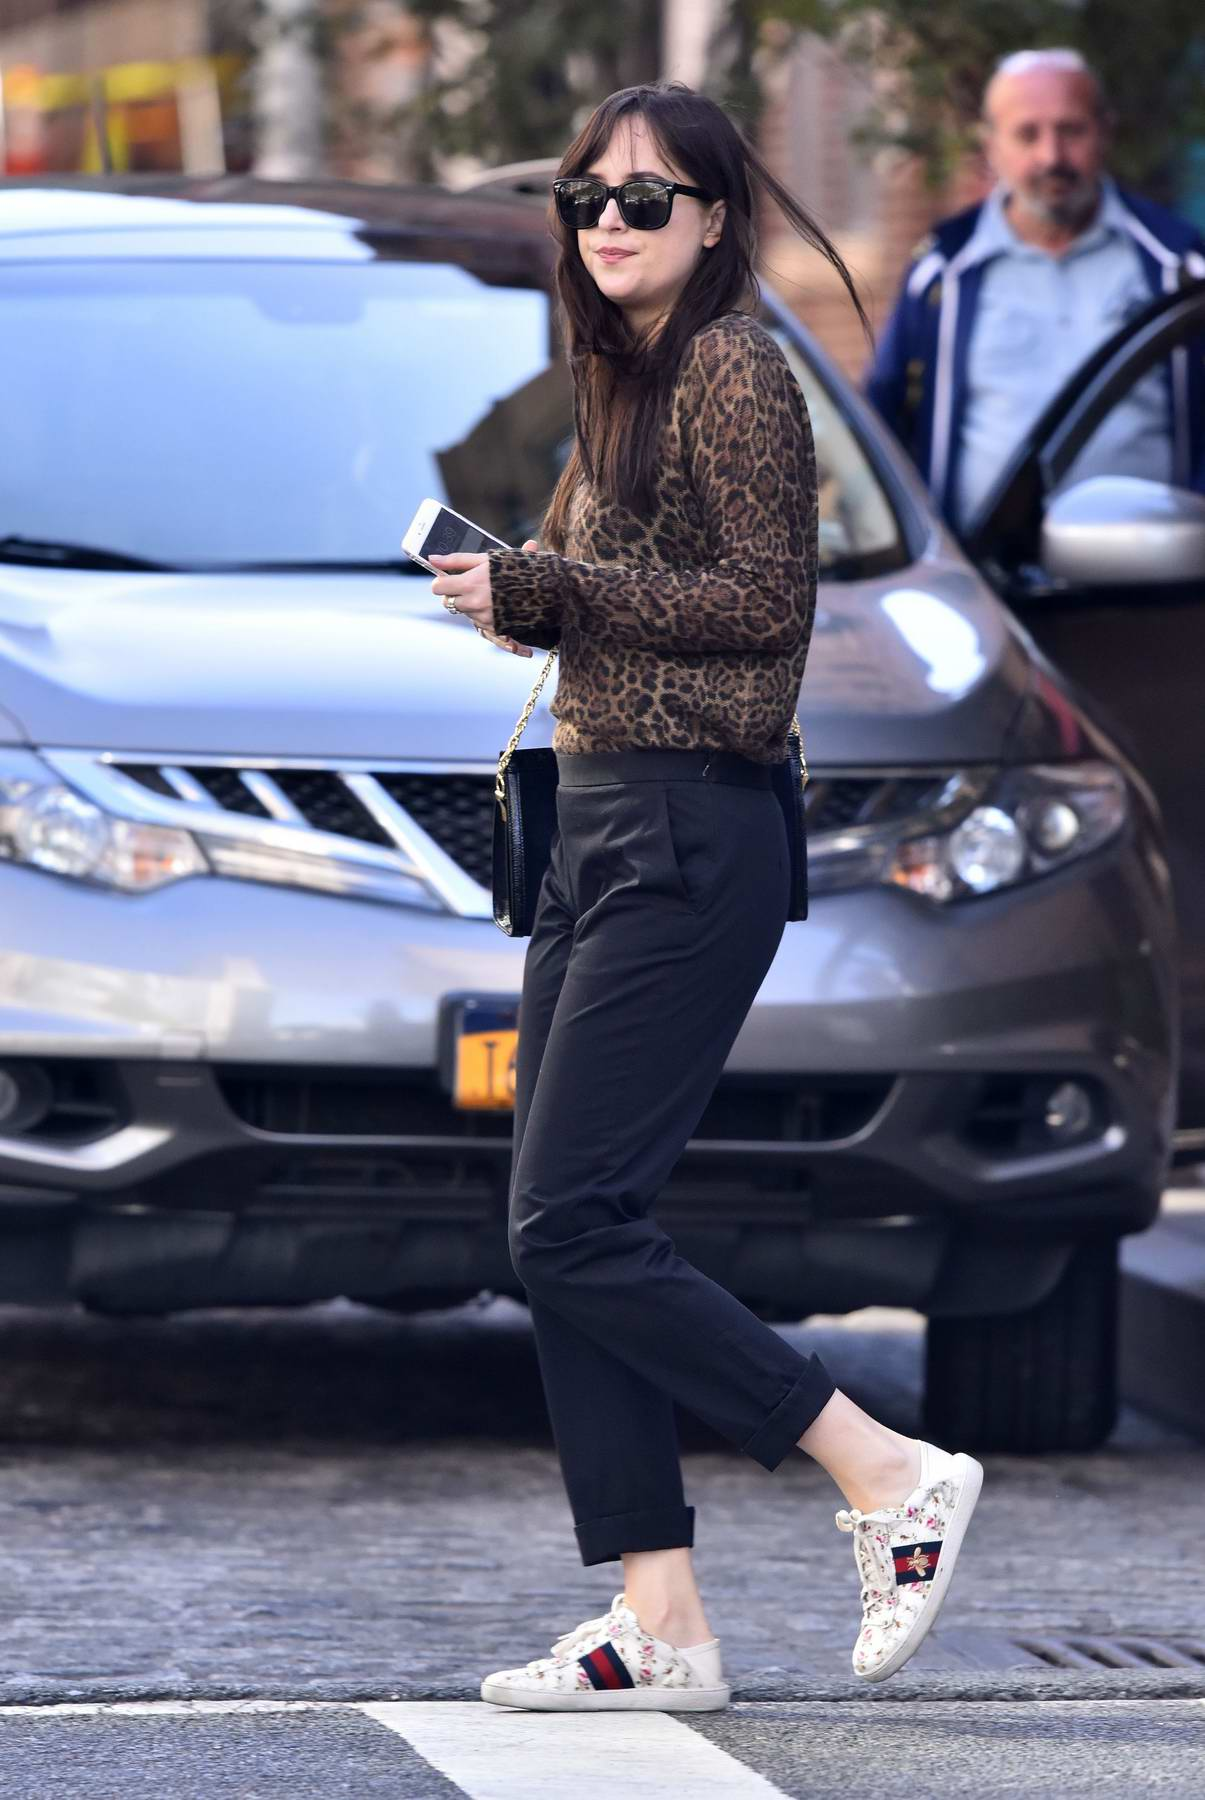 Dakota Johnson wears a leopard top paired with Gucci white sneakers while crossing the street in New York City